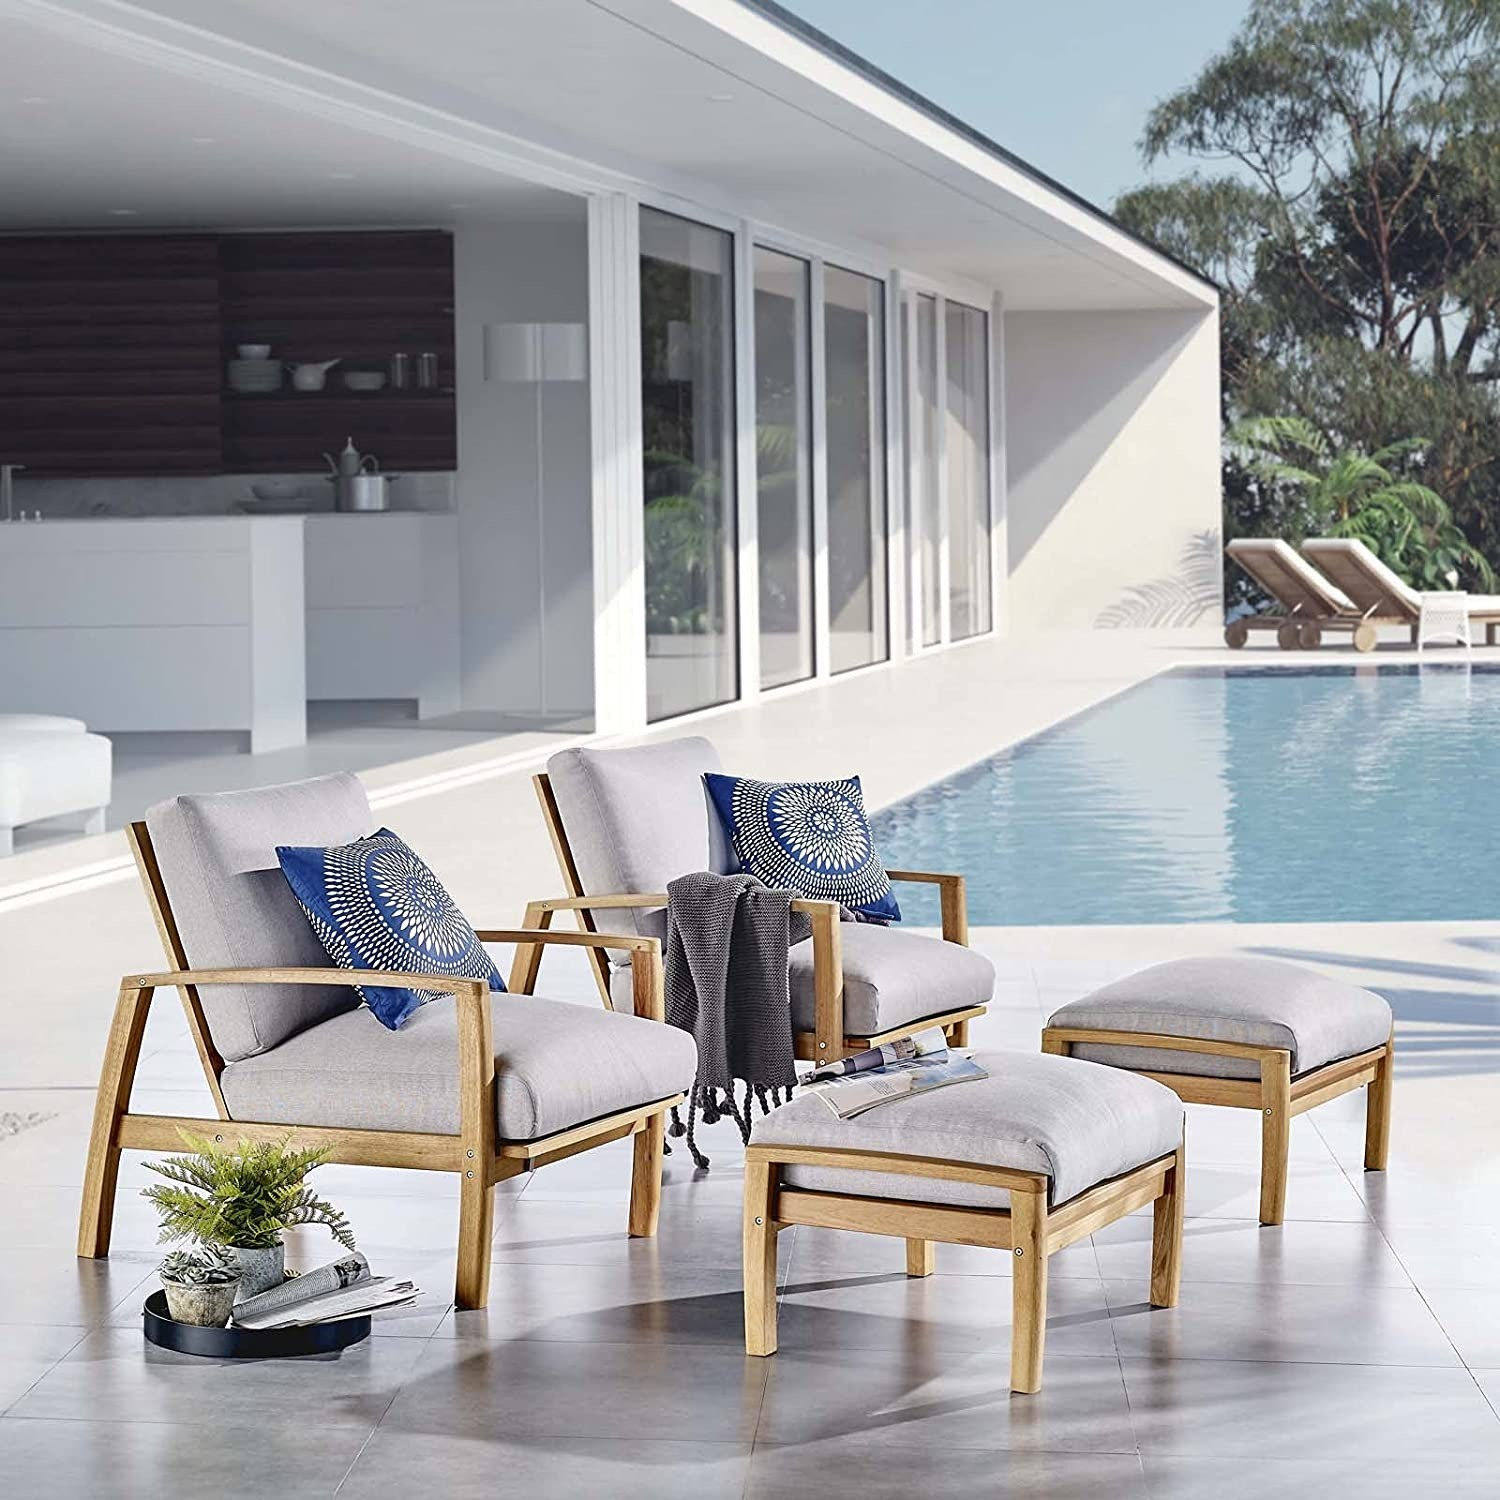 4-Piece Outdoor Patio Set In Natural Wood Finish - image-6